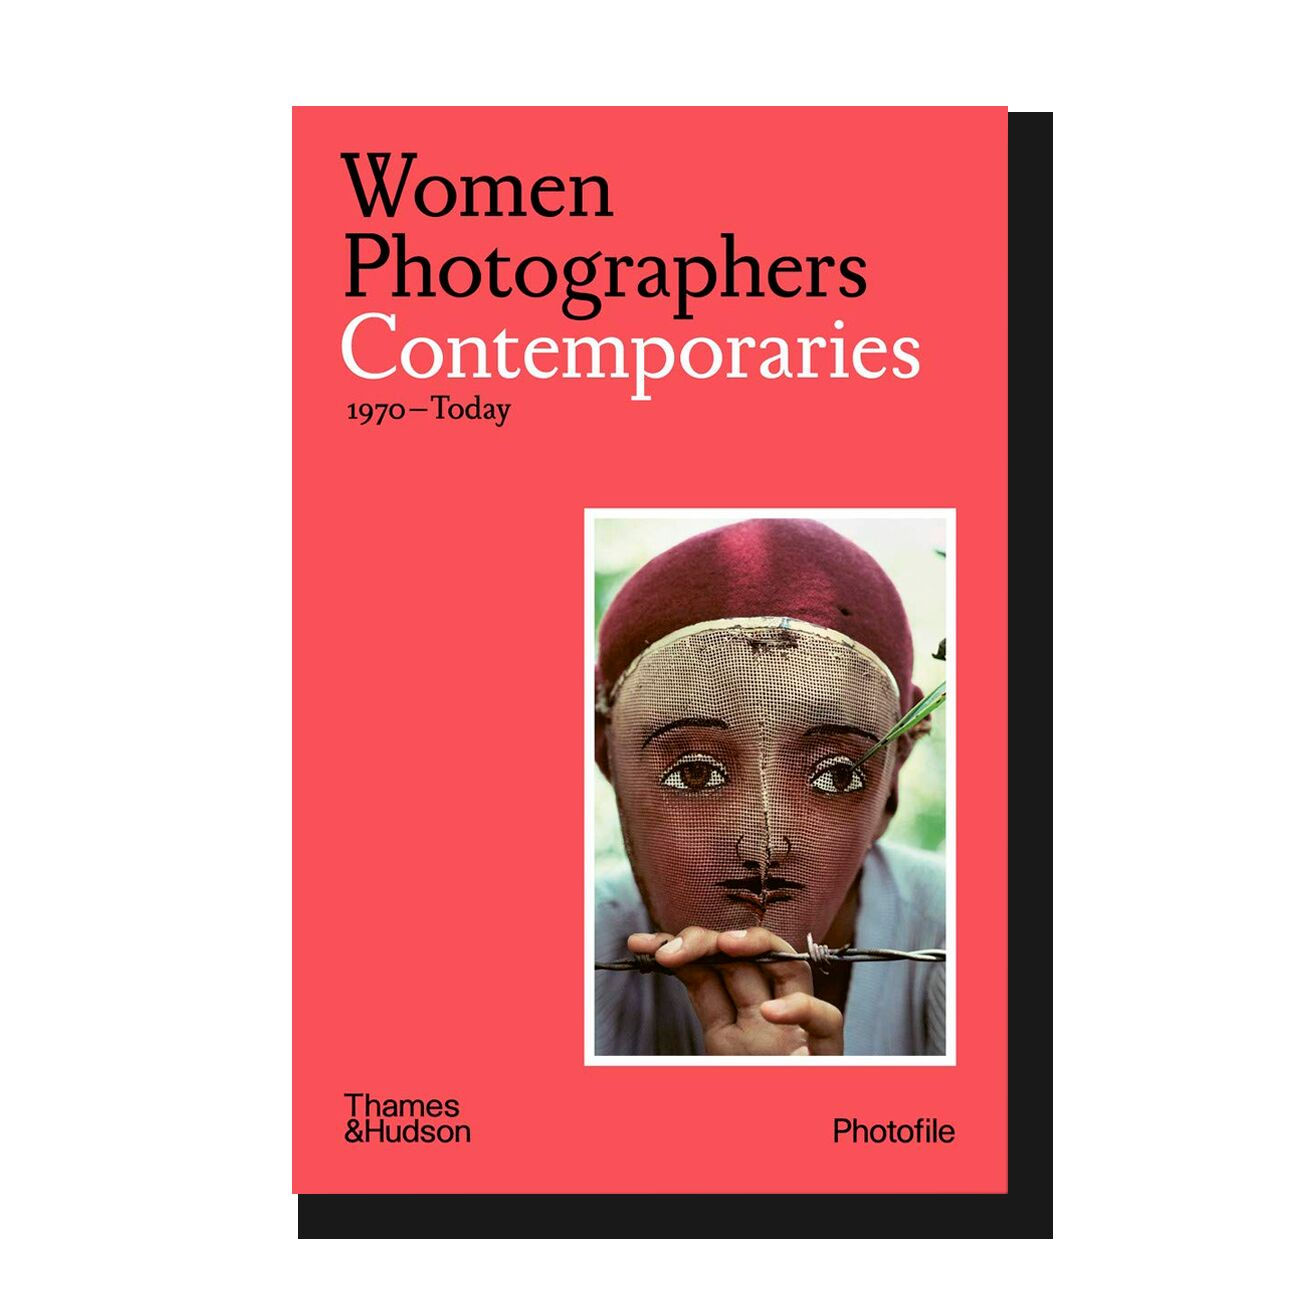 Women Photographers: Contemporaries: (1970 - Today)